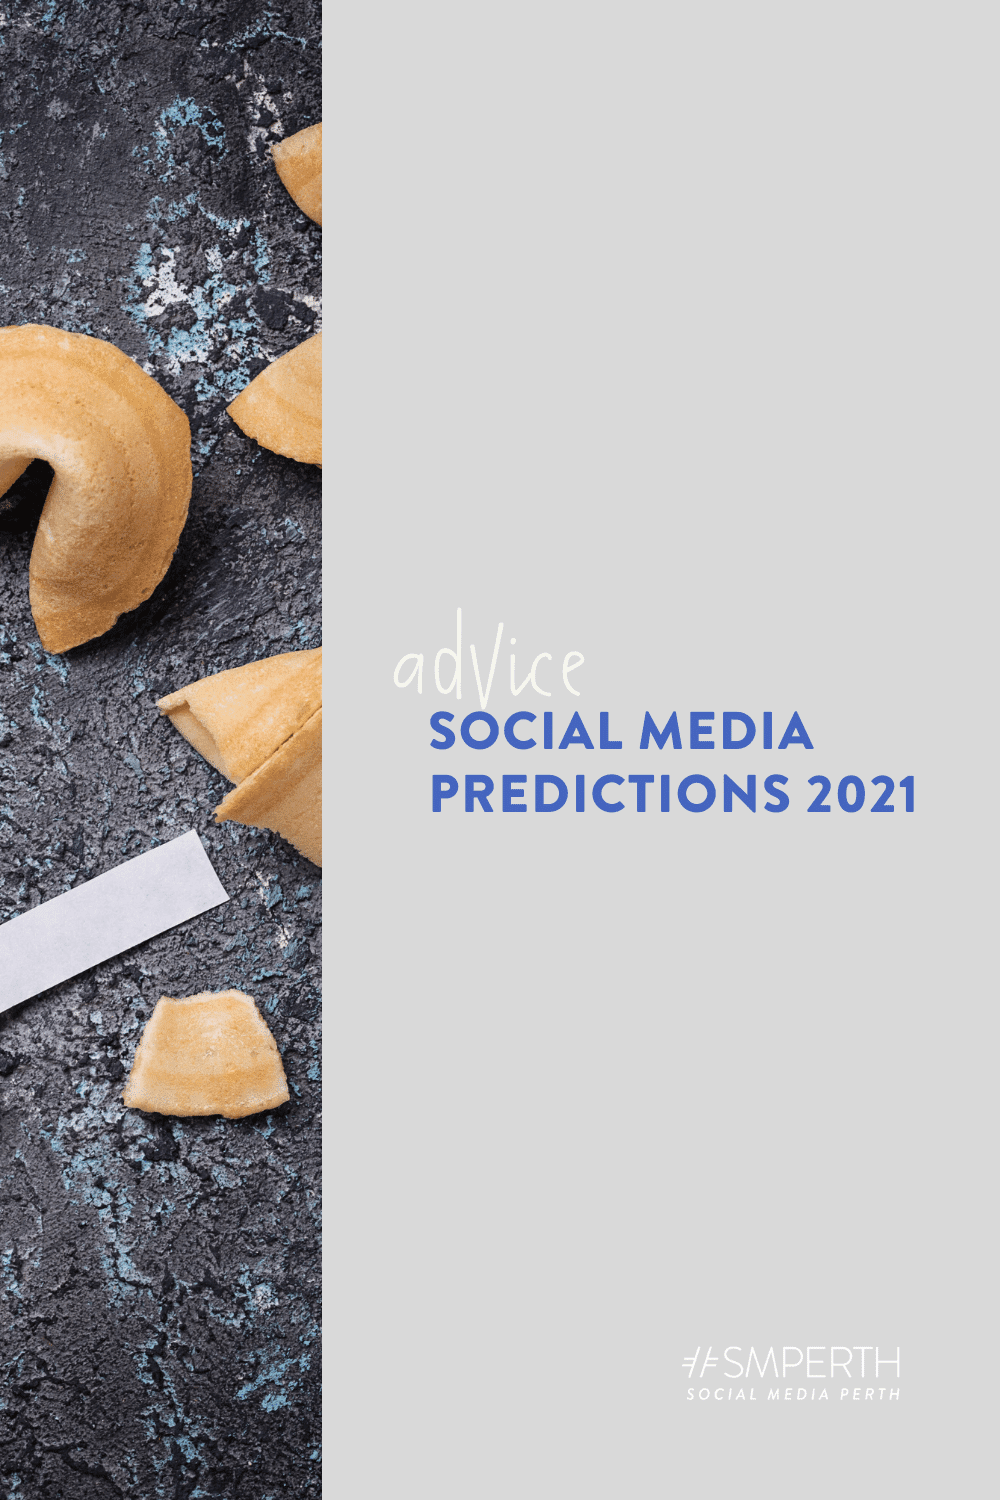 Social media predictions 2021: Marketers share their forecasts for what's next